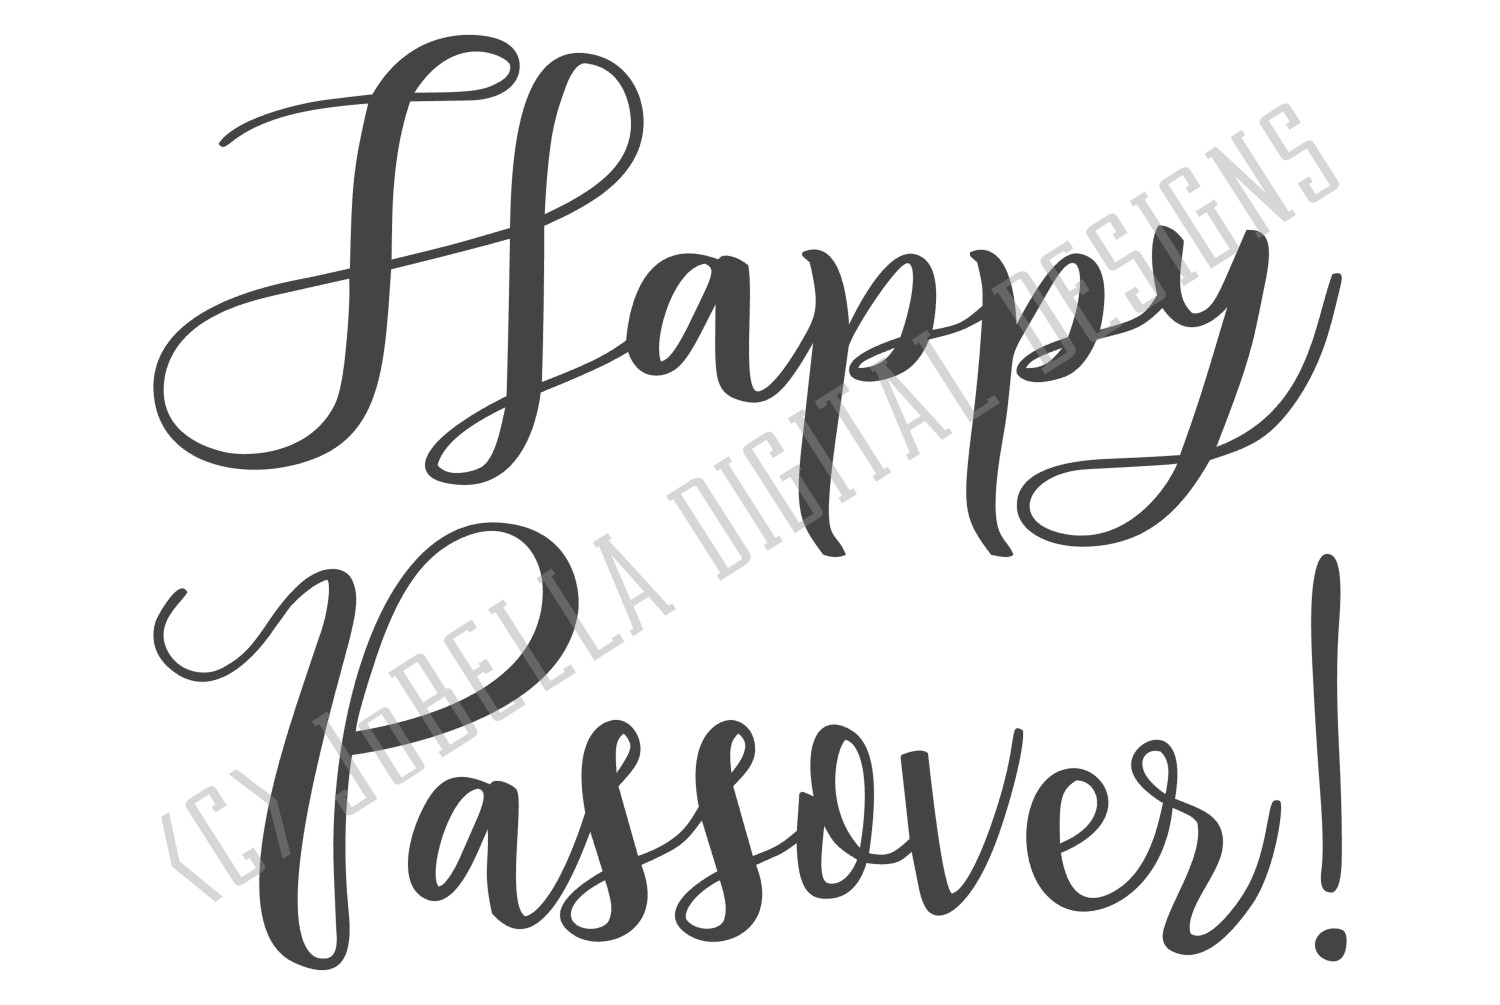 Happy Passover SVG and Printable Jewish Holiday Design example image 2